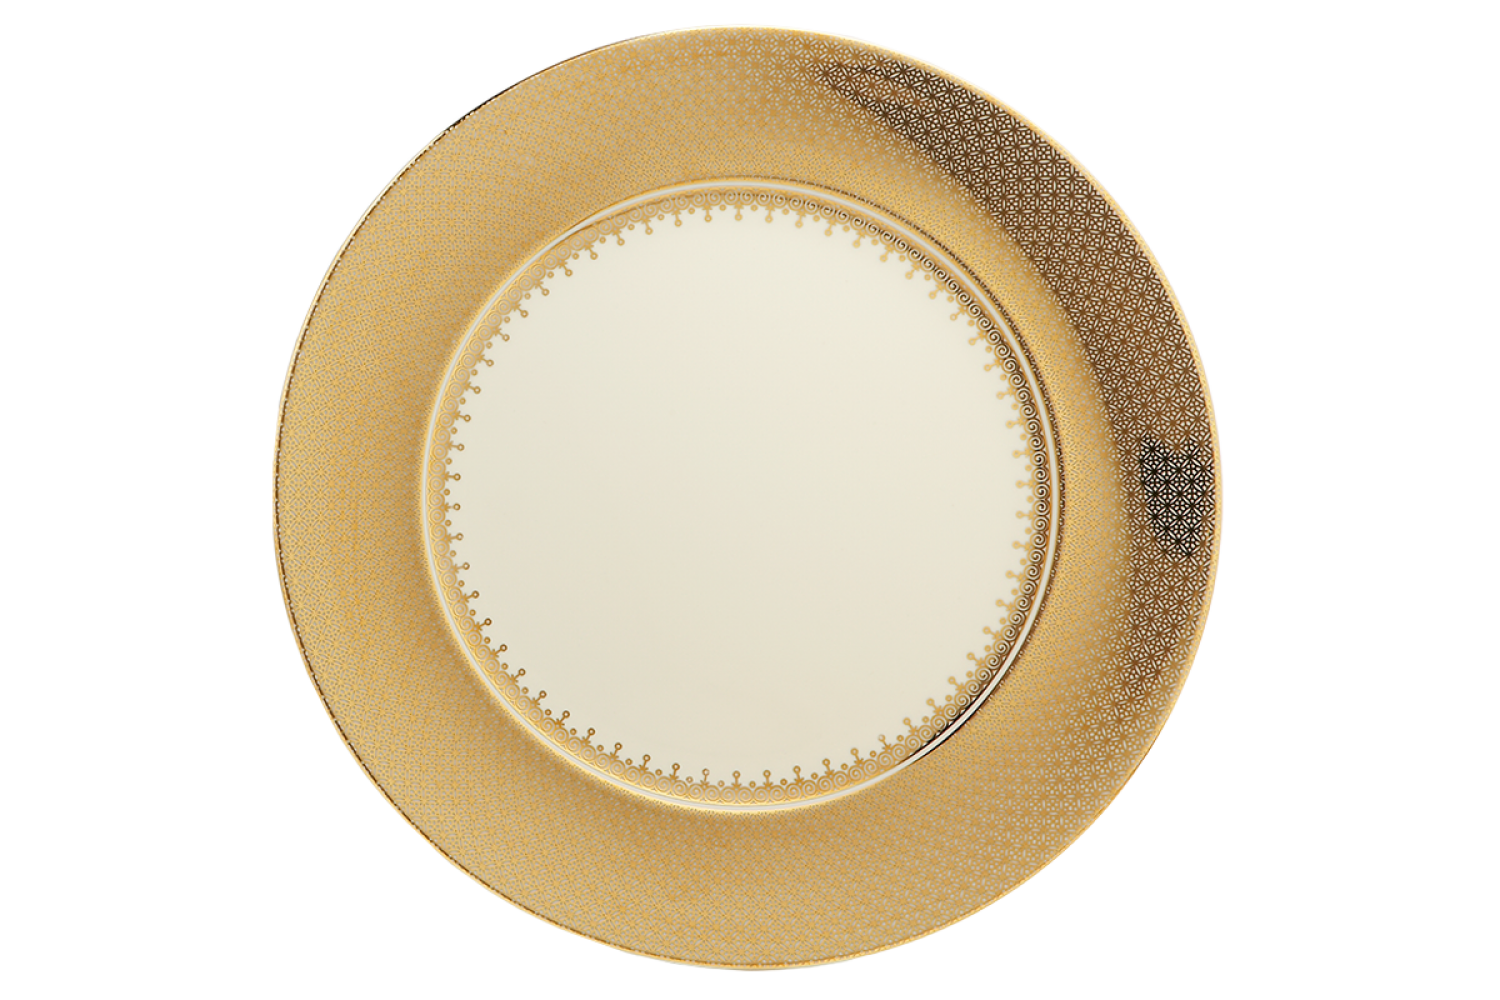 HALEY JANE Mottahedeh - Gold Lace Service Plate G6